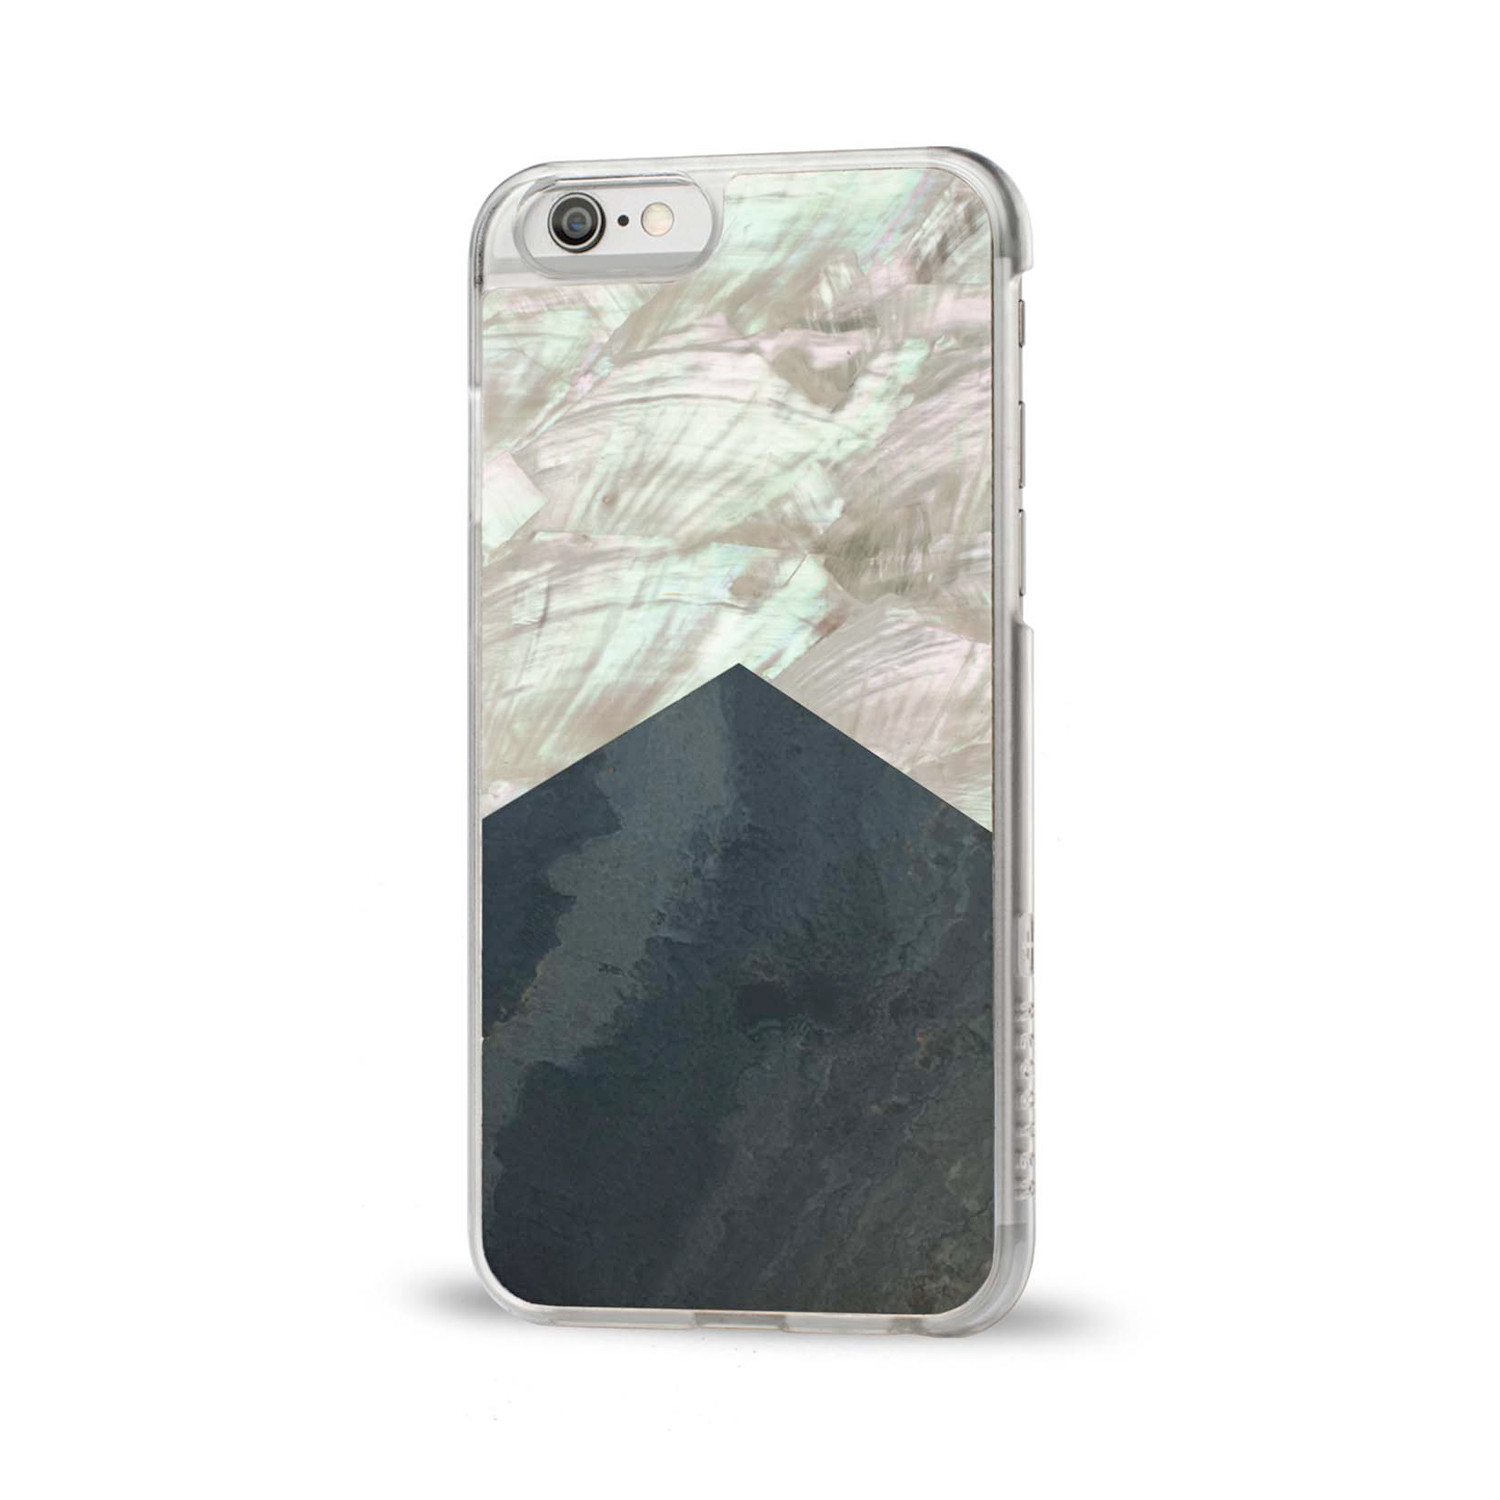 shell case for iphone 6